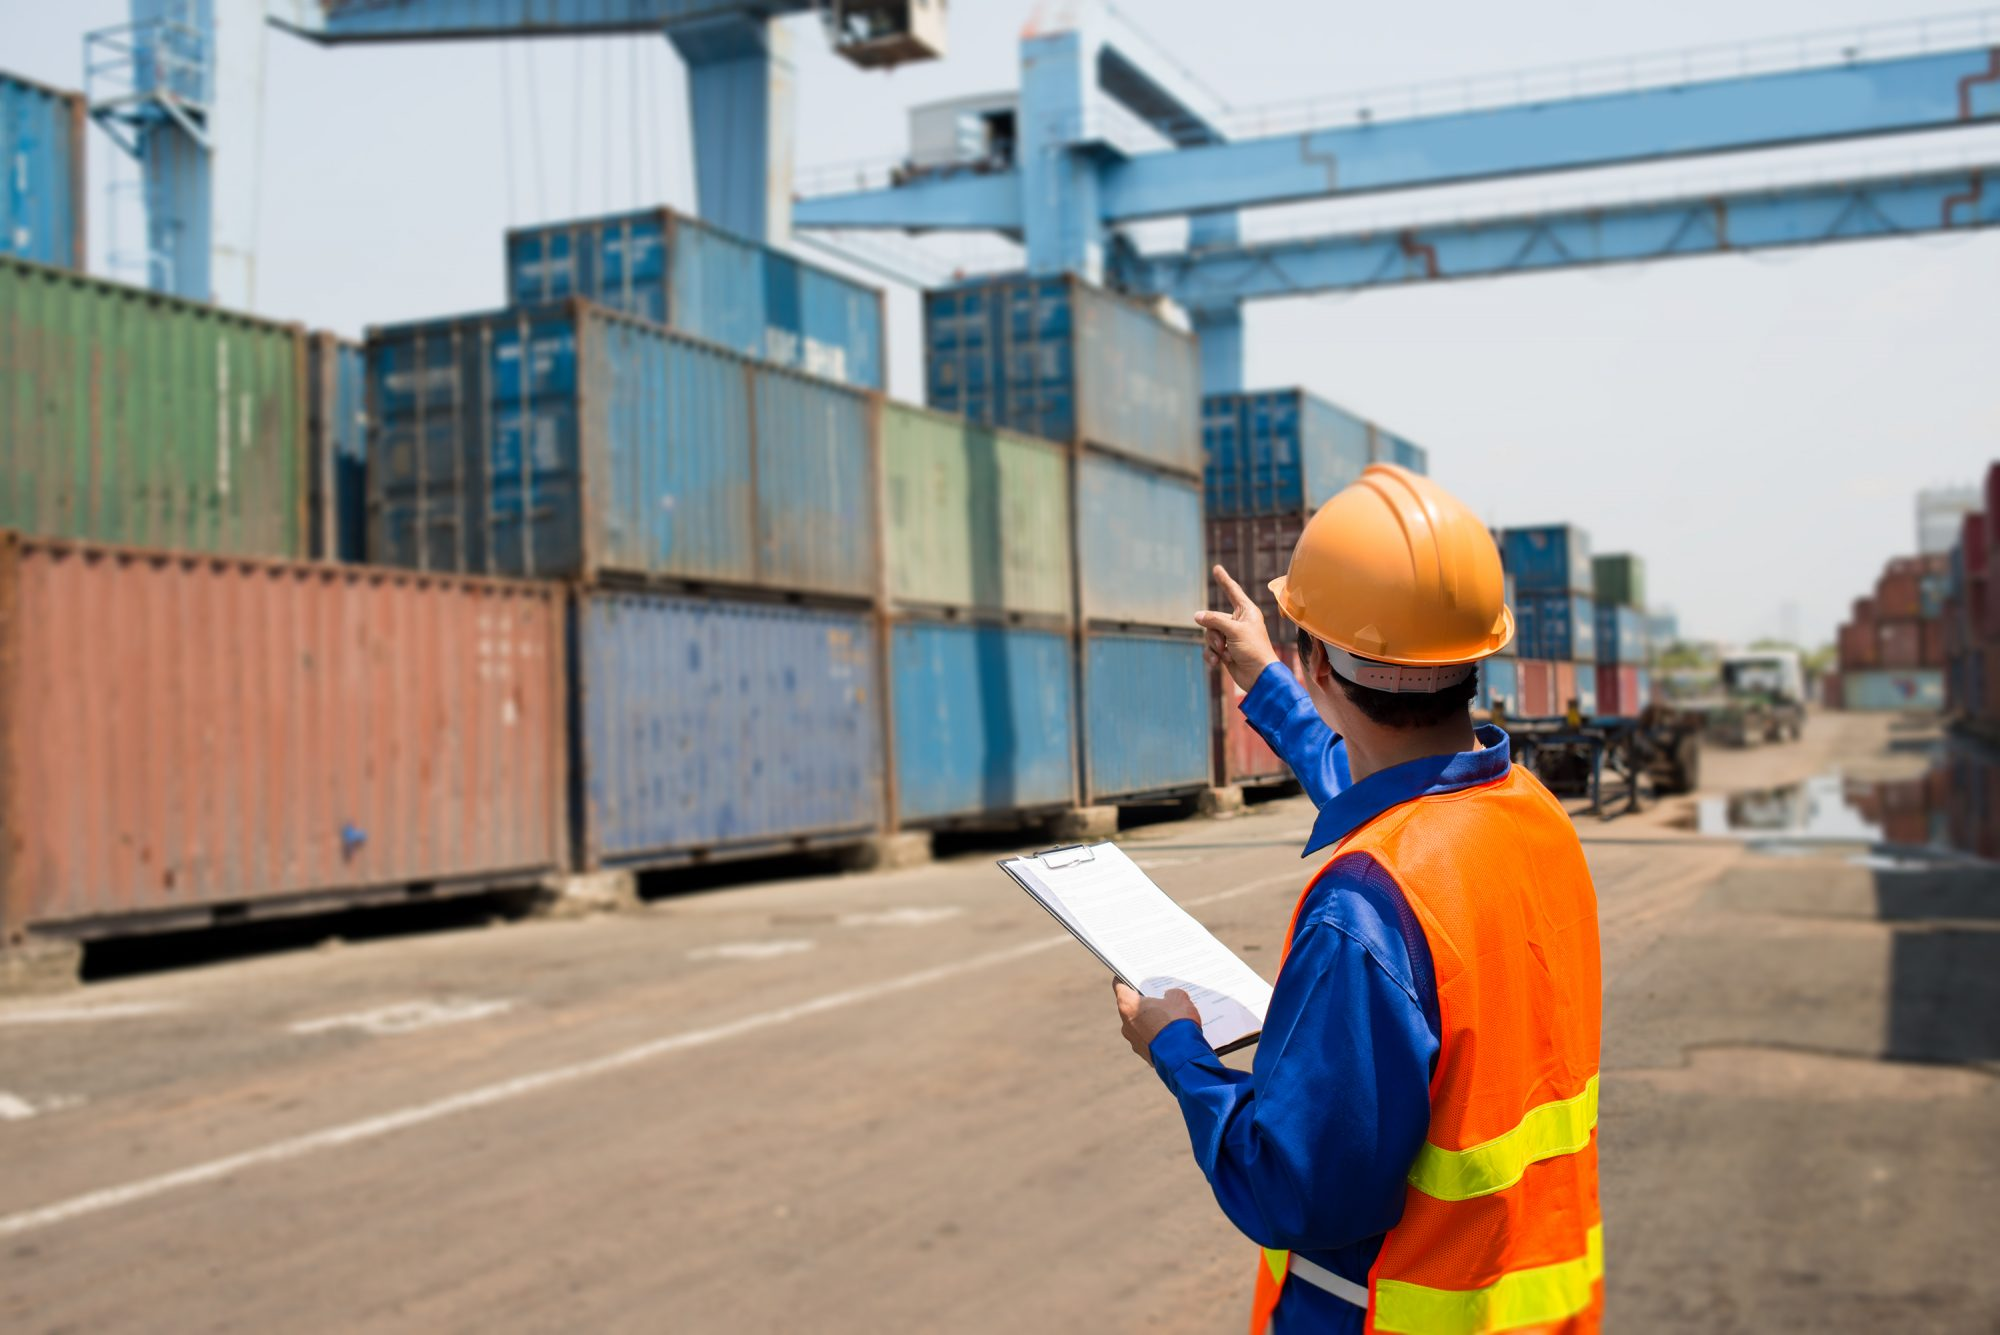 An Overview of the Longshore Harbor and Workers' Compensation Act